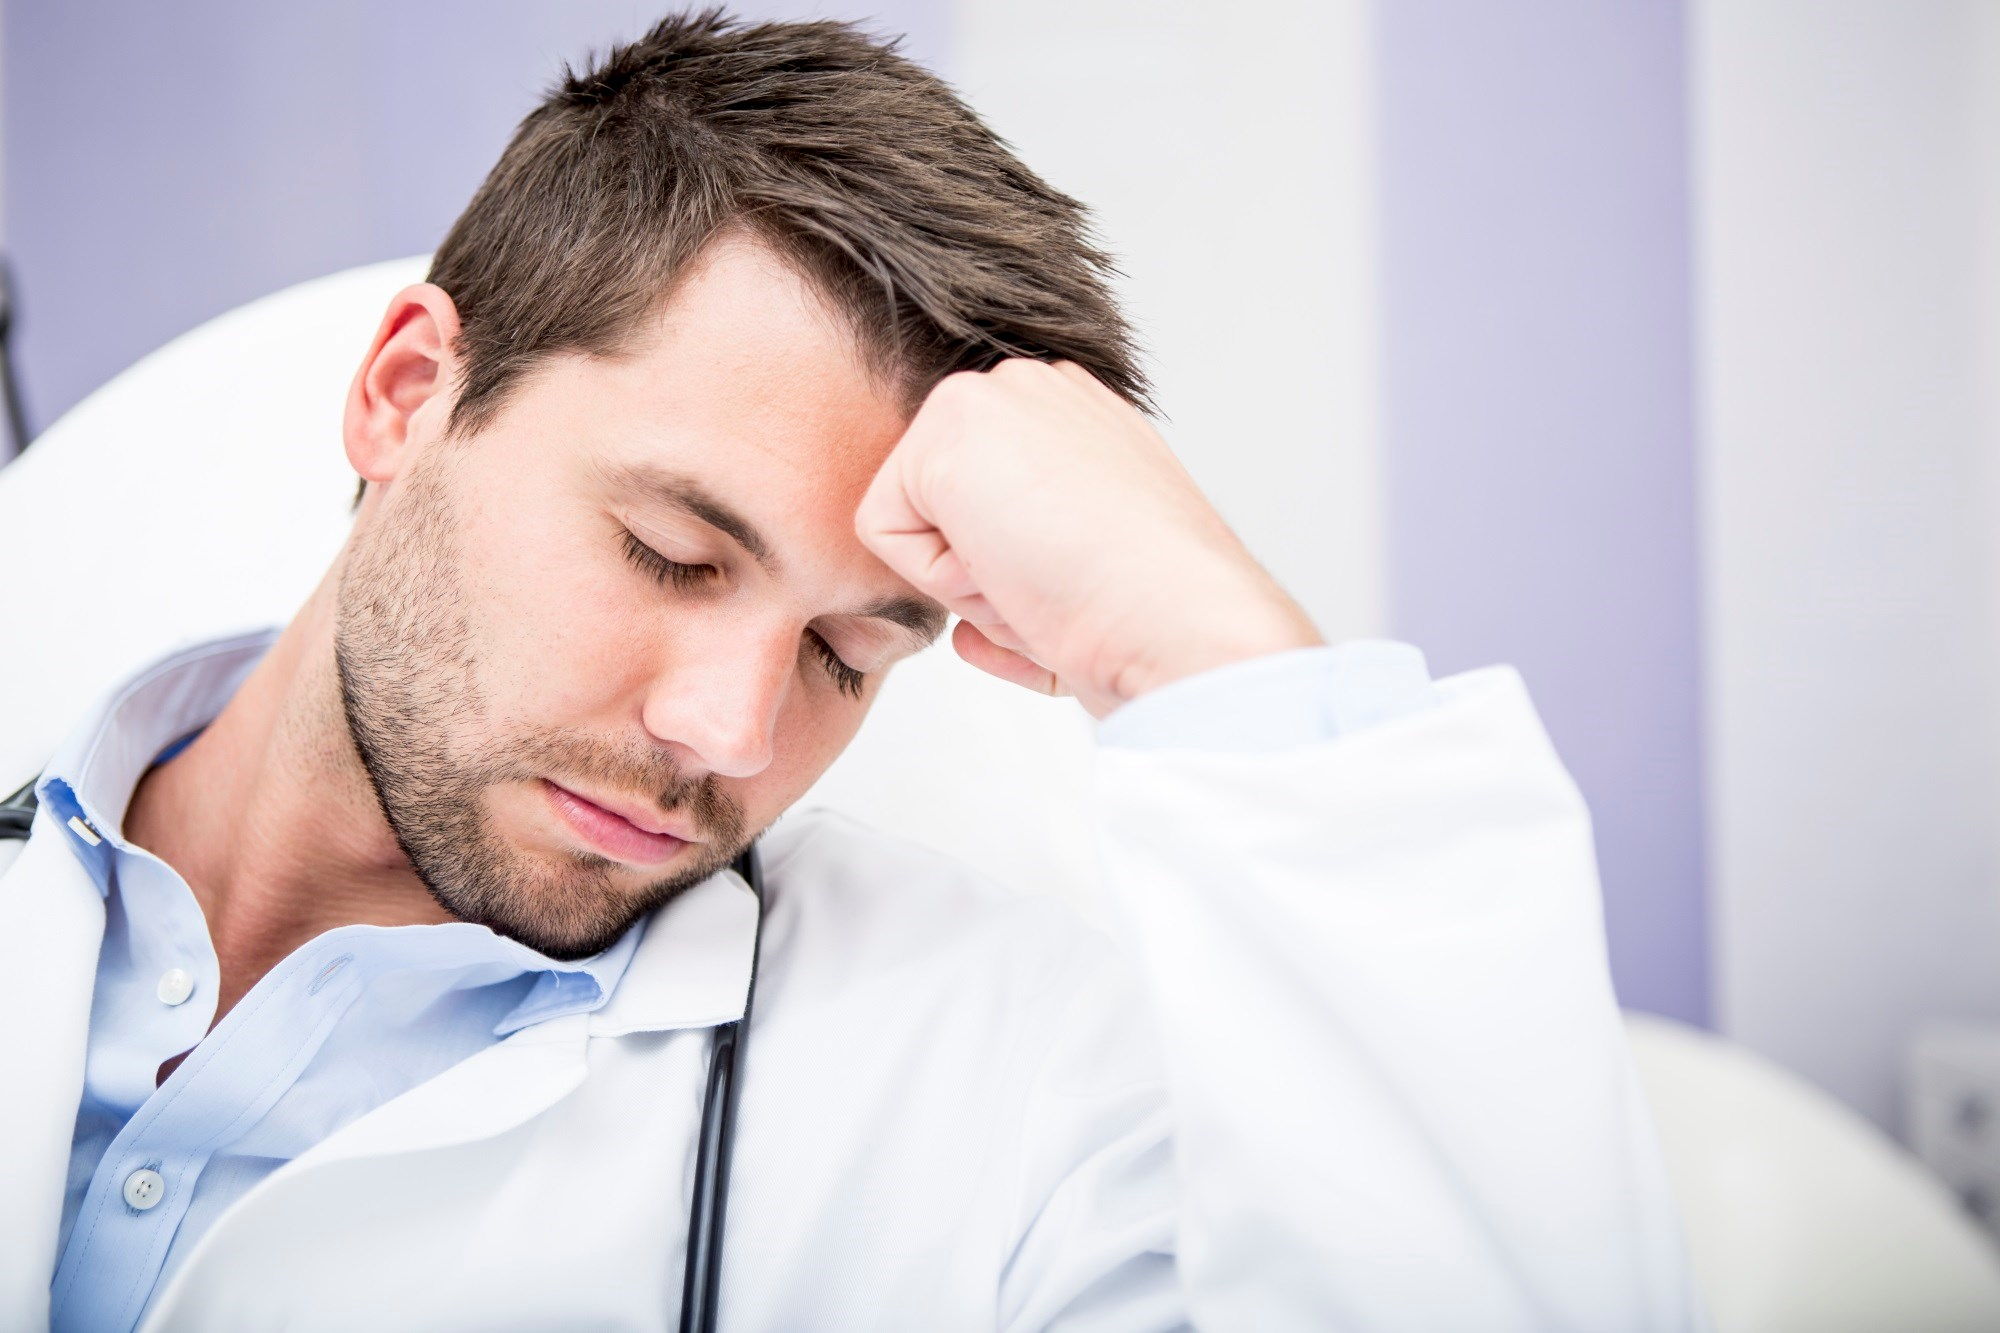 Physician burnout has been called a national epidemic, purportedly affecting as many as one-half to two-thirds of practicing physicians.